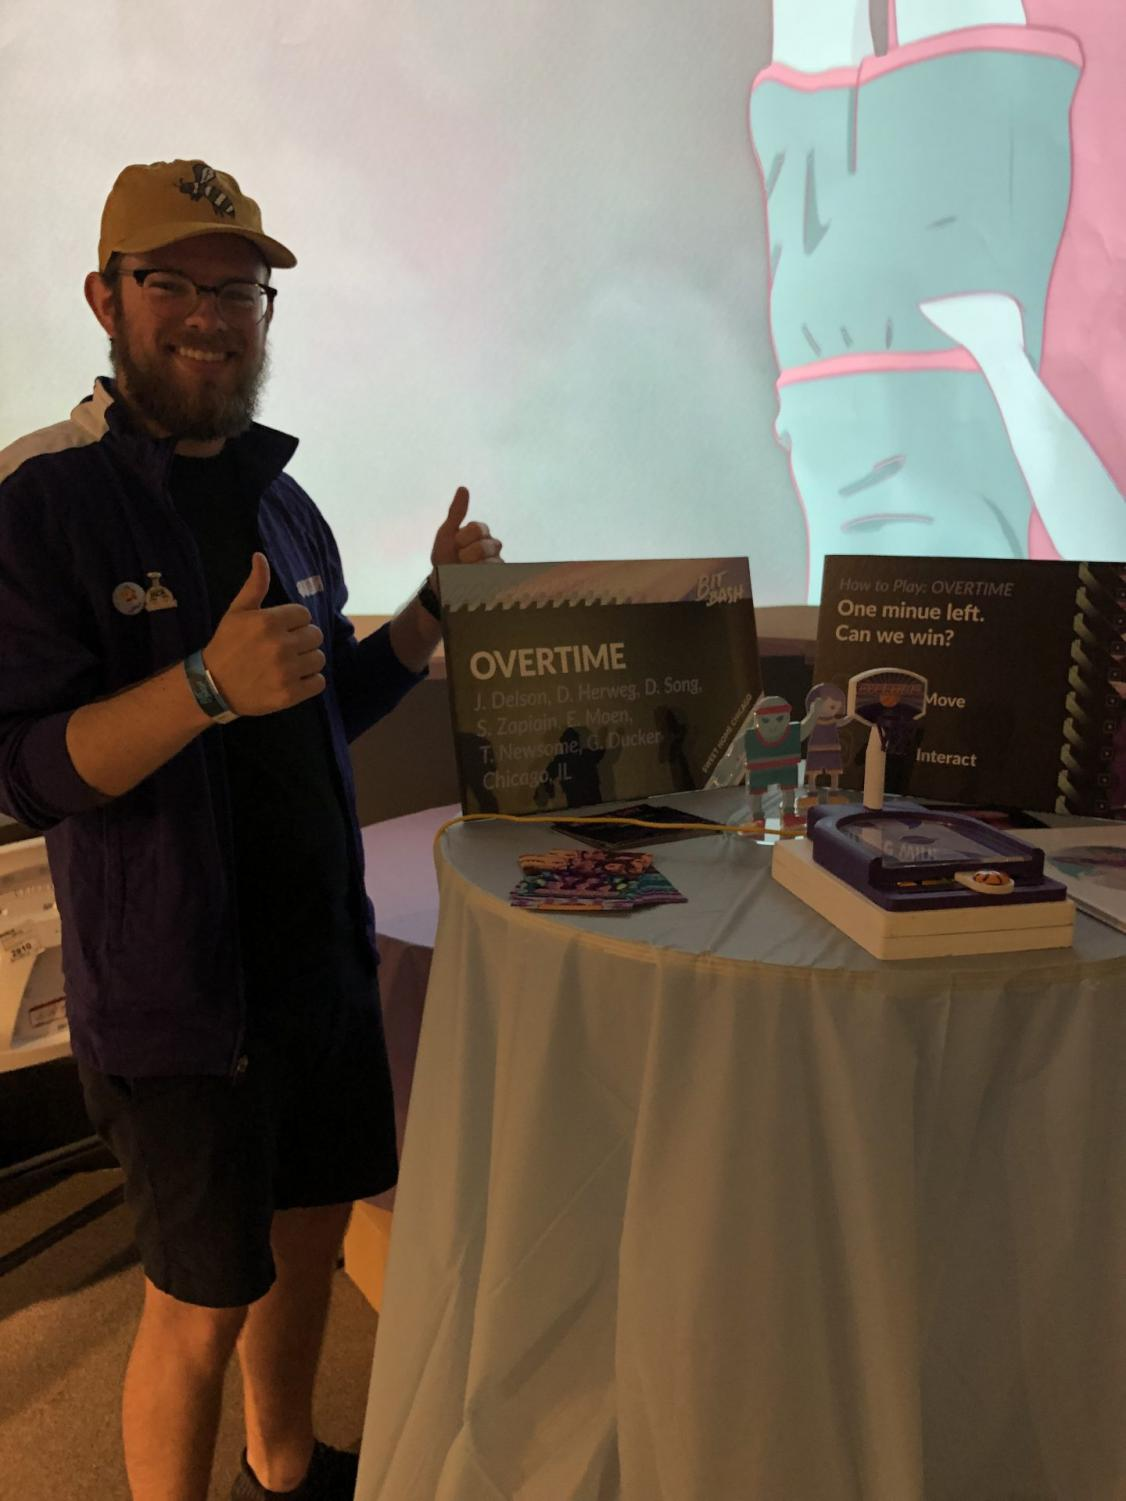 Bit Bash event showcases Chicago game makers - The DePaulia